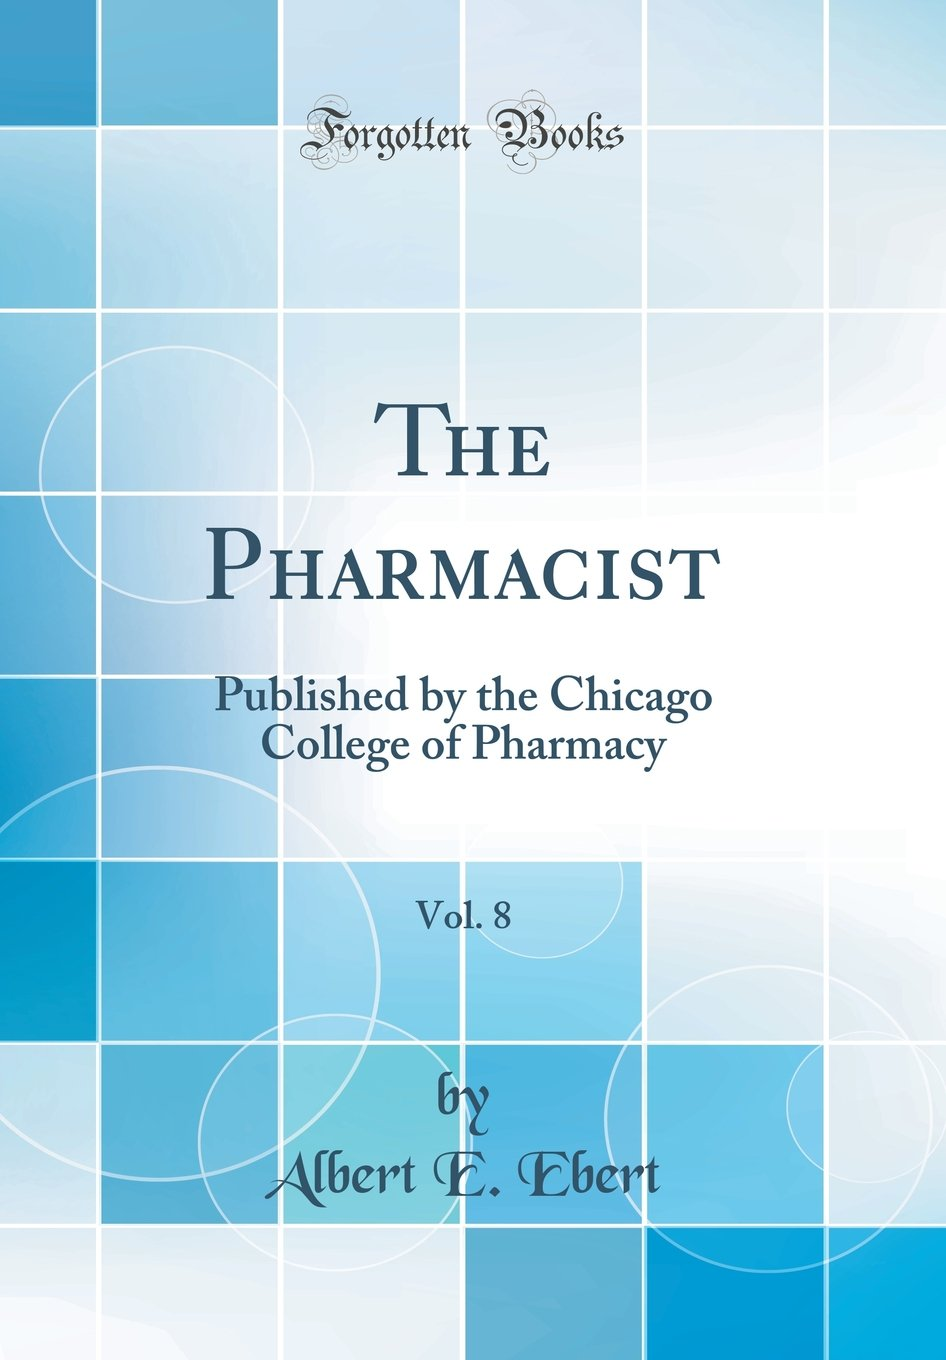 The Pharmacist, Vol. 8: Published by the Chicago College of Pharmacy (Classic Reprint) ebook